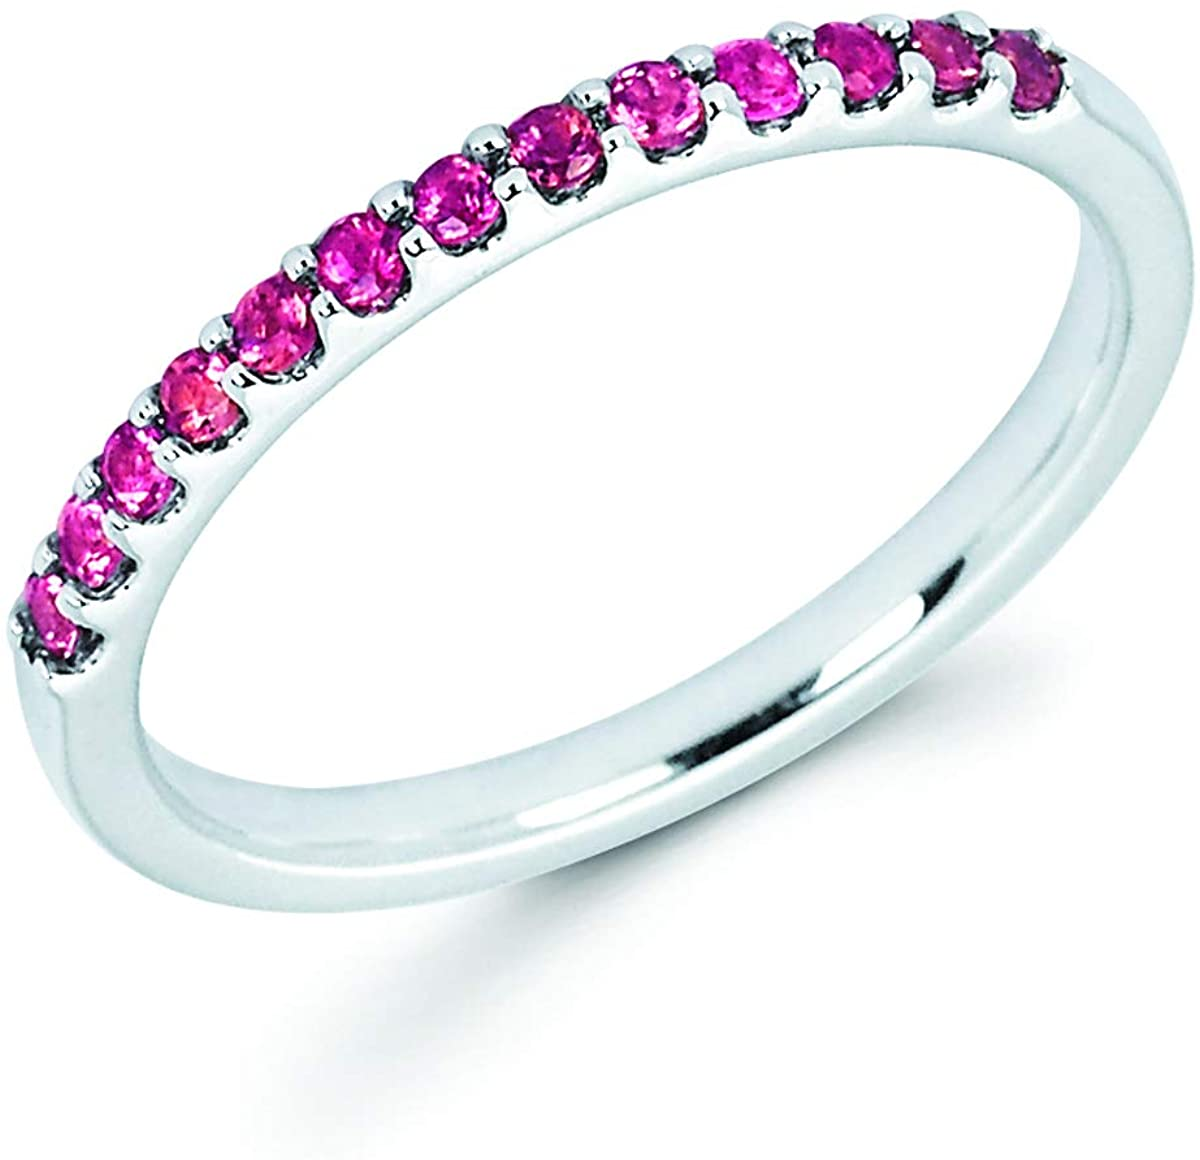 14K White Gold 1/5 Cttw Natural Pink Tourmaline Stackable 2MM Wedding Anniversary Band Ring - October Birthstone, Size 6